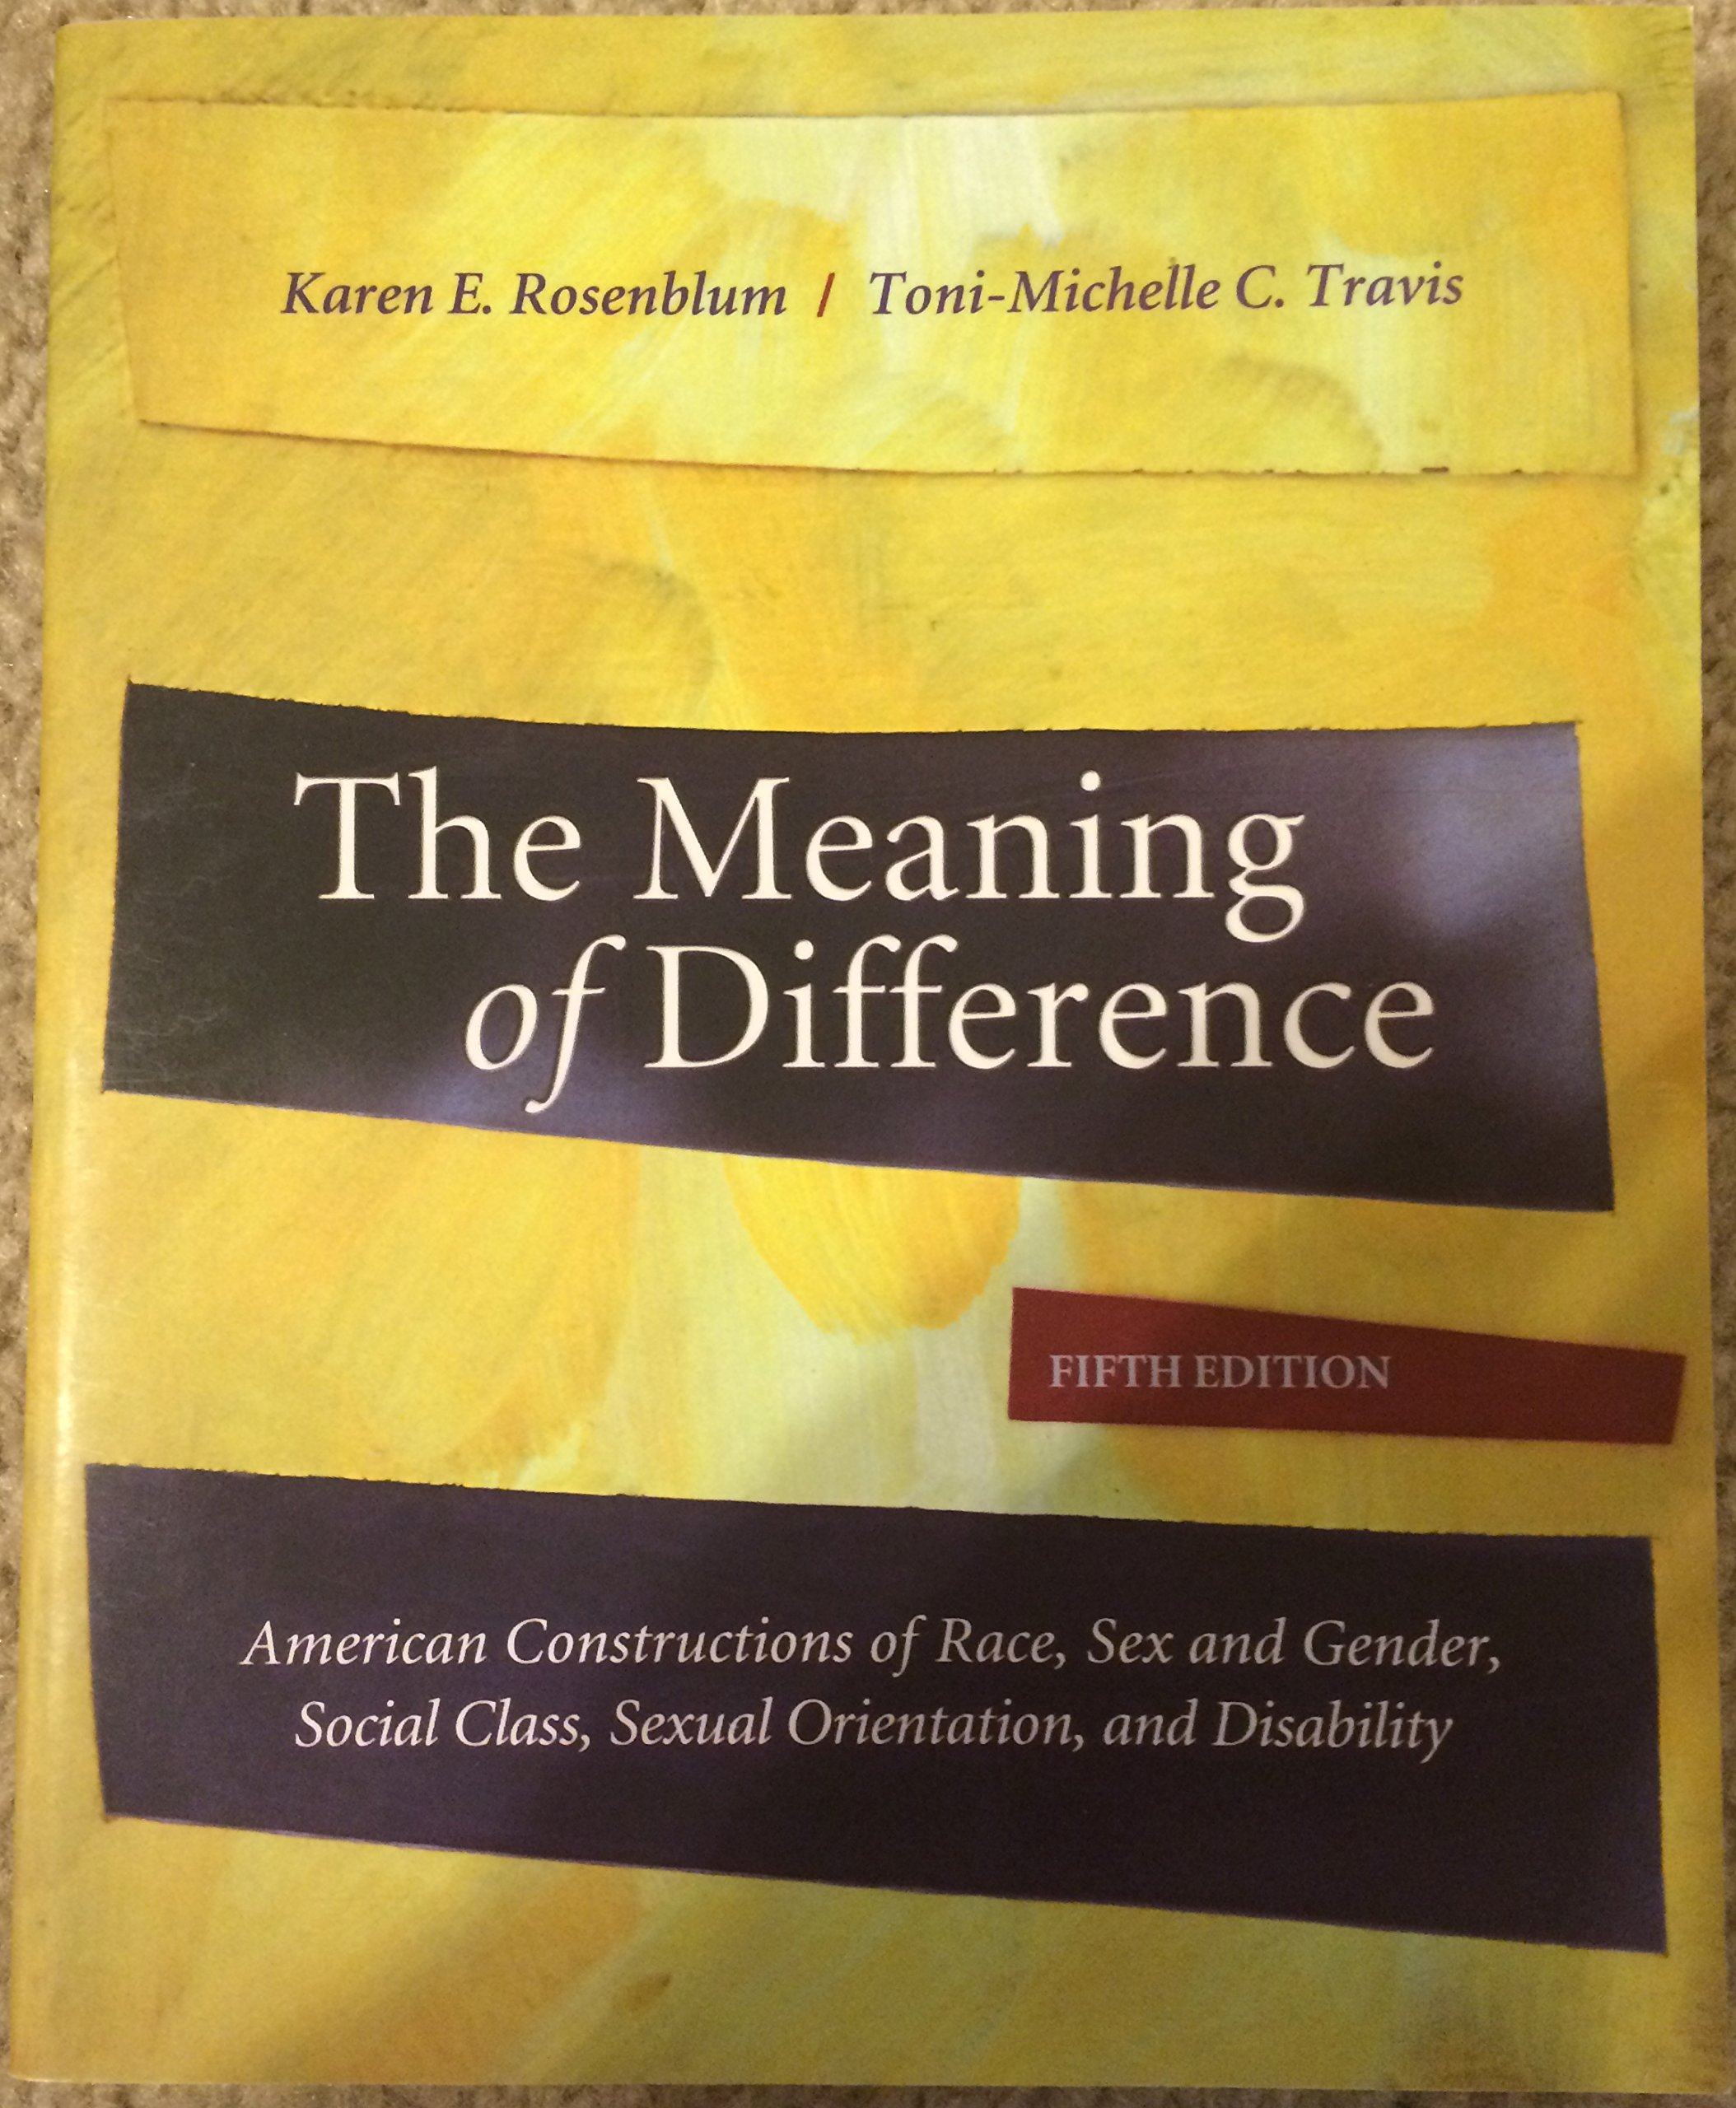 Download The Meaning of Difference: American Constructions of Race, Sex and Gender, Social Class, Sexual Orientation, and Disability 5th (fifth) edition PDF